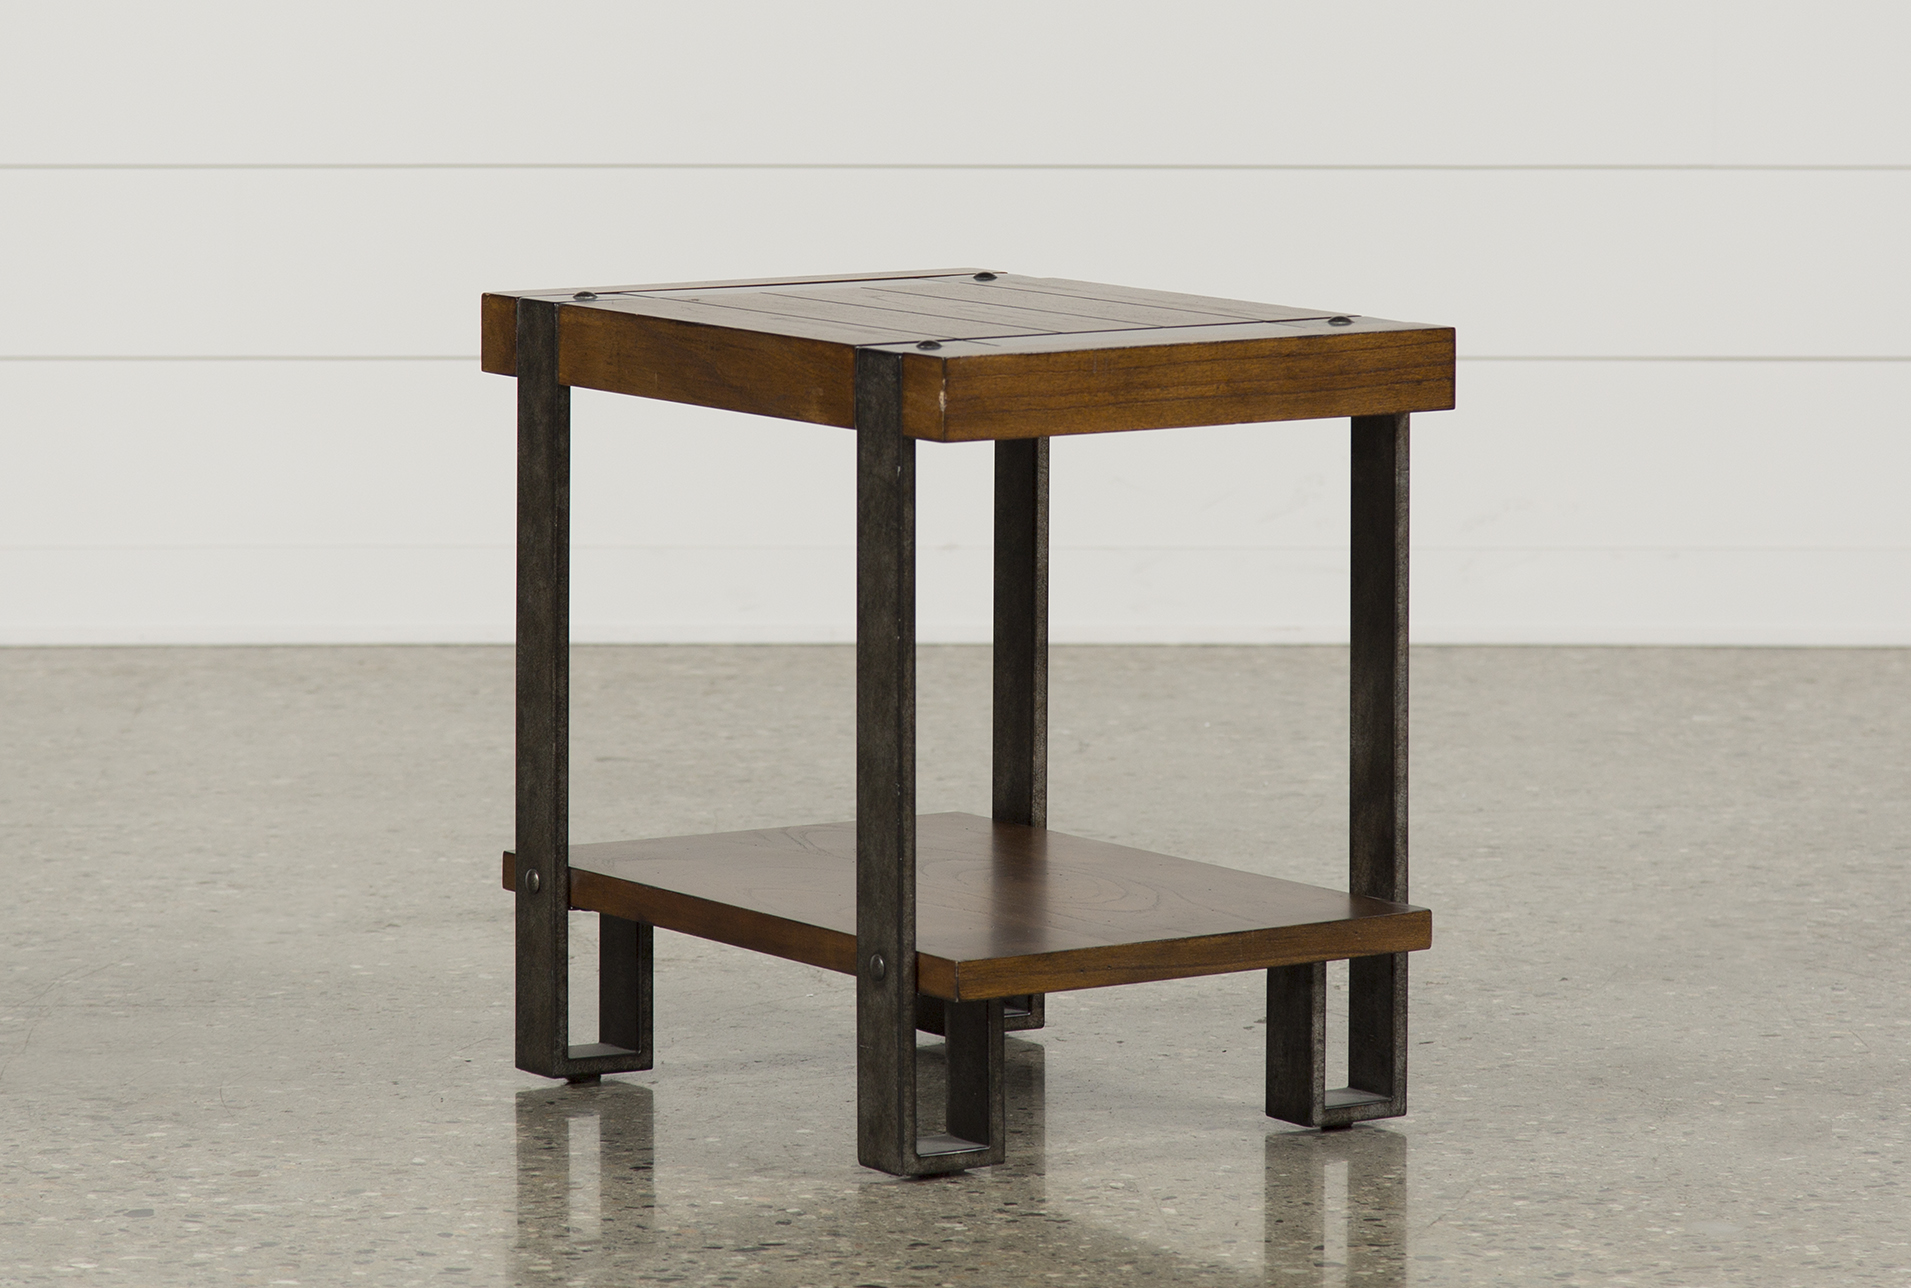 Charmant Marley Chairside Table   360